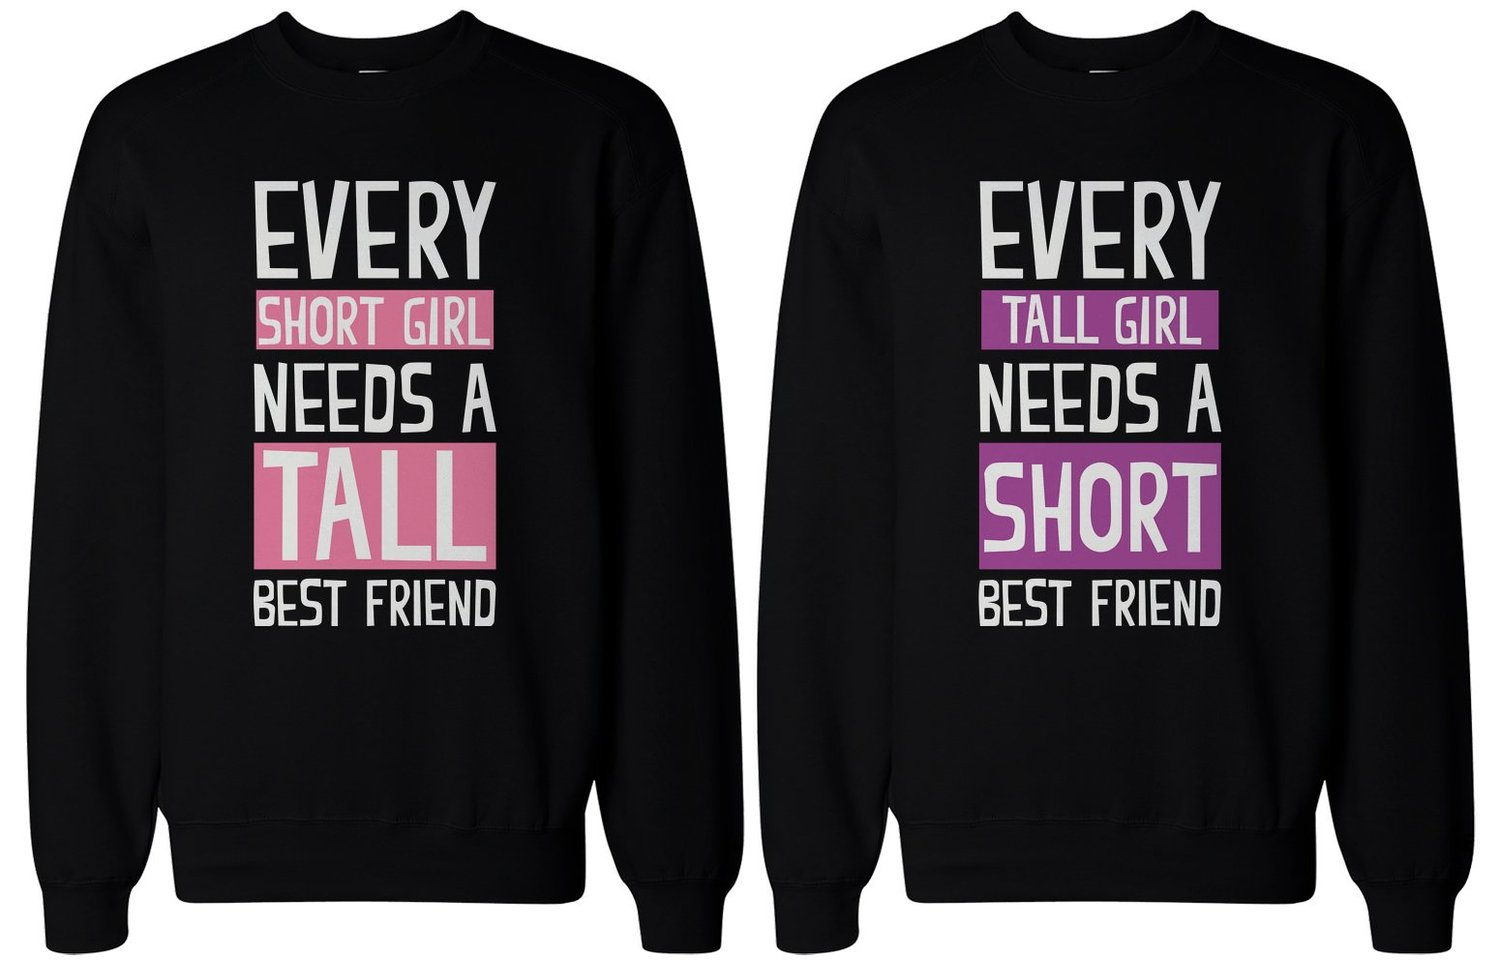 Amazon.com: BFF Gifts - Tall and Short Best Friend Matching Sweatshirts for Best Friends: Clothing